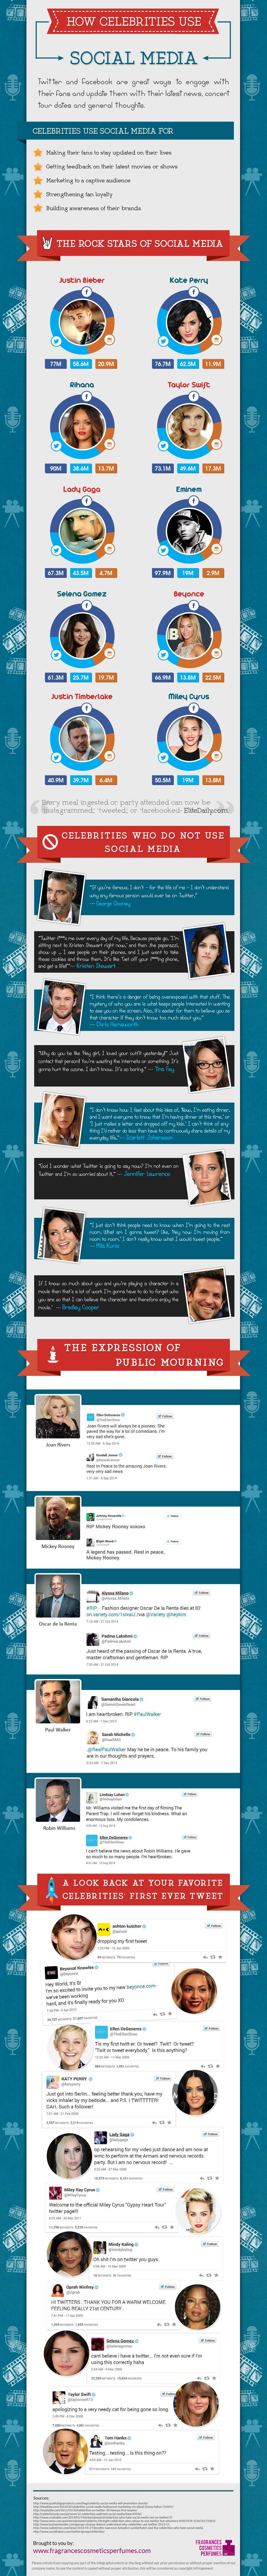 How-Celebrities-Use-Social-Media